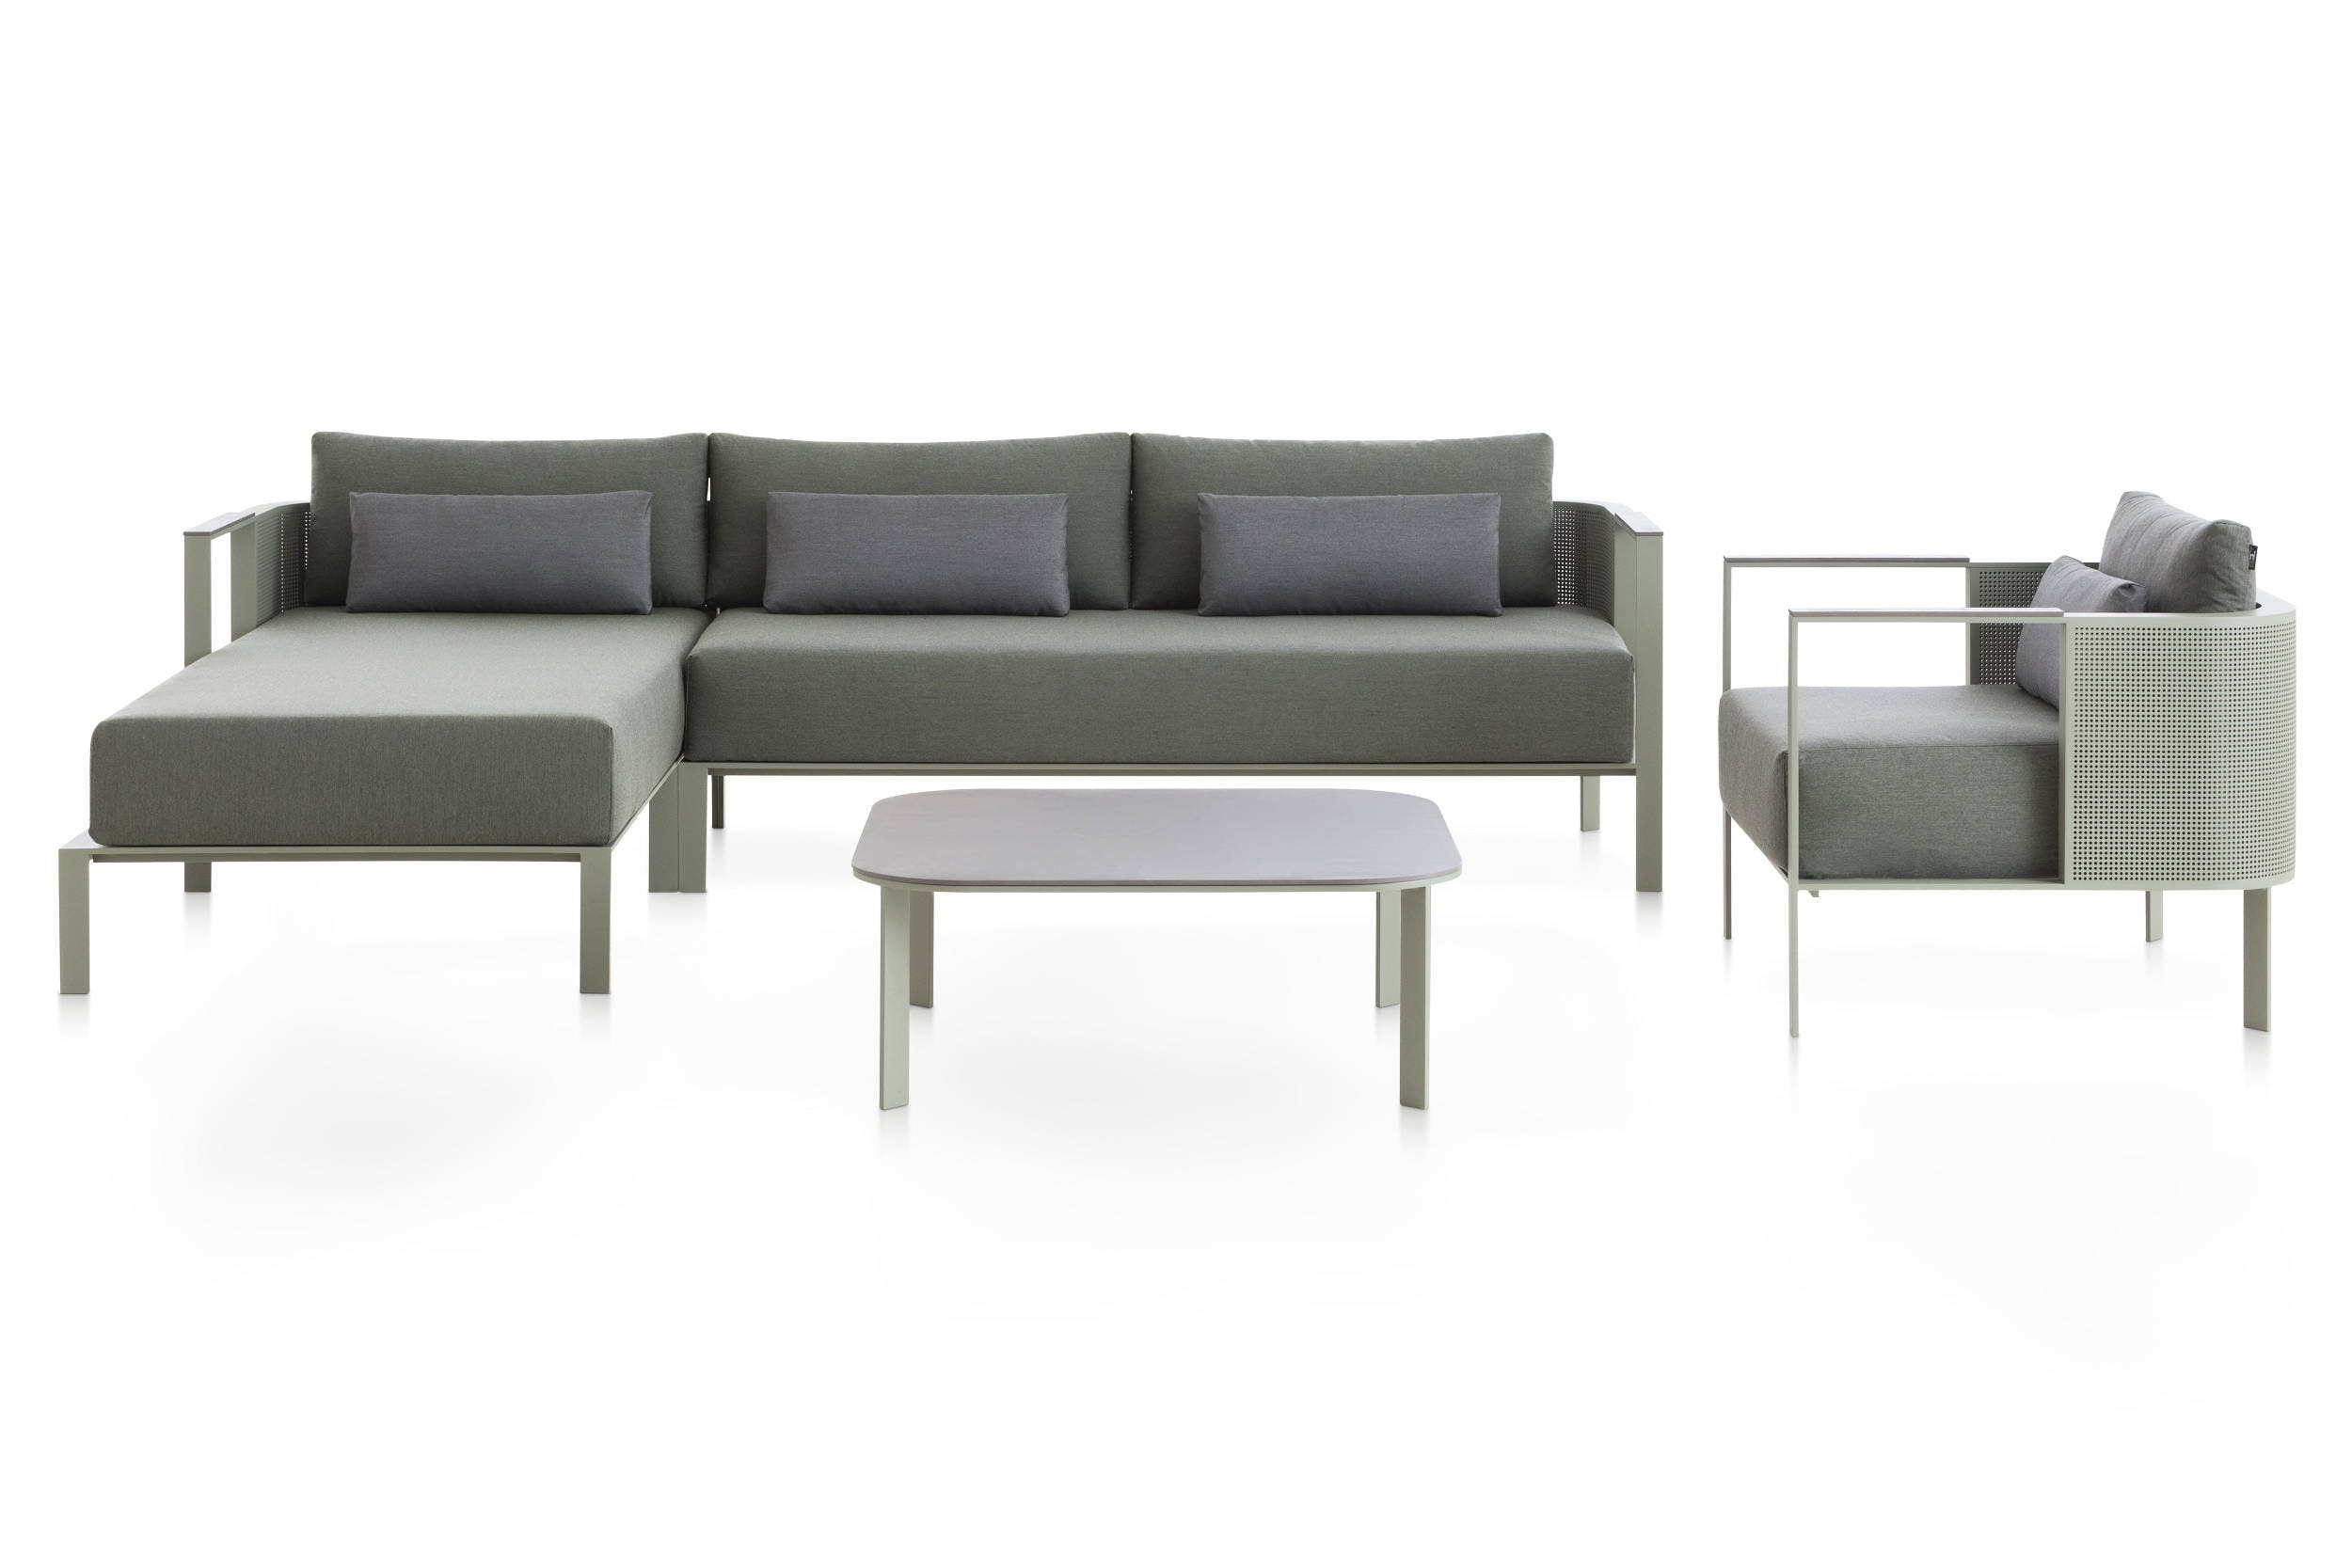 Image of Solanas composition 2 1 in Outdoors spaces that break design boundaries with indoors - Cosentino